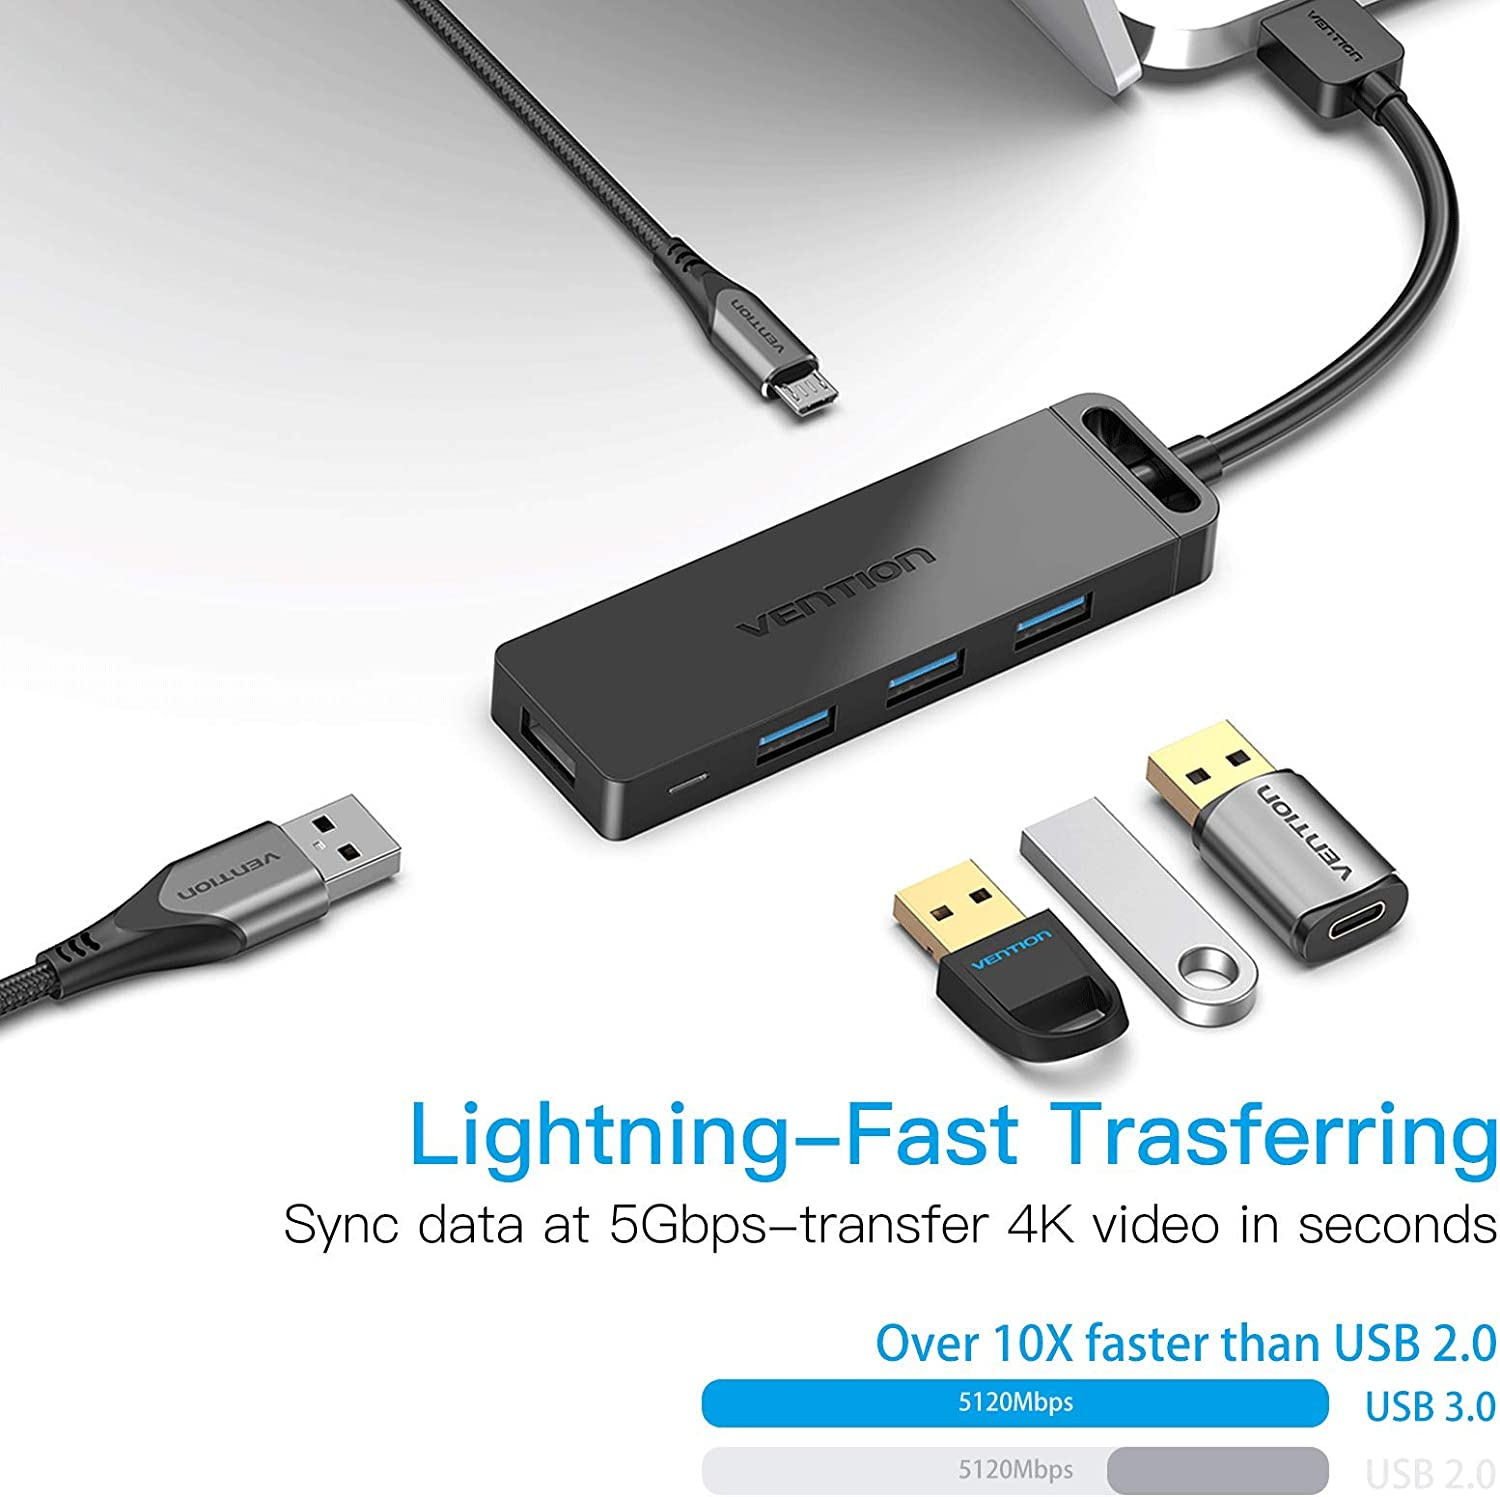 Mobile HDD PC 1.5FT//0.5m USB Hub Charging Supported VENTION 4-Port USB 3.0 Hub Ultra-Slim Data USB Splitter Compatible for MacBook Laptop Surface Pro Flash Drive